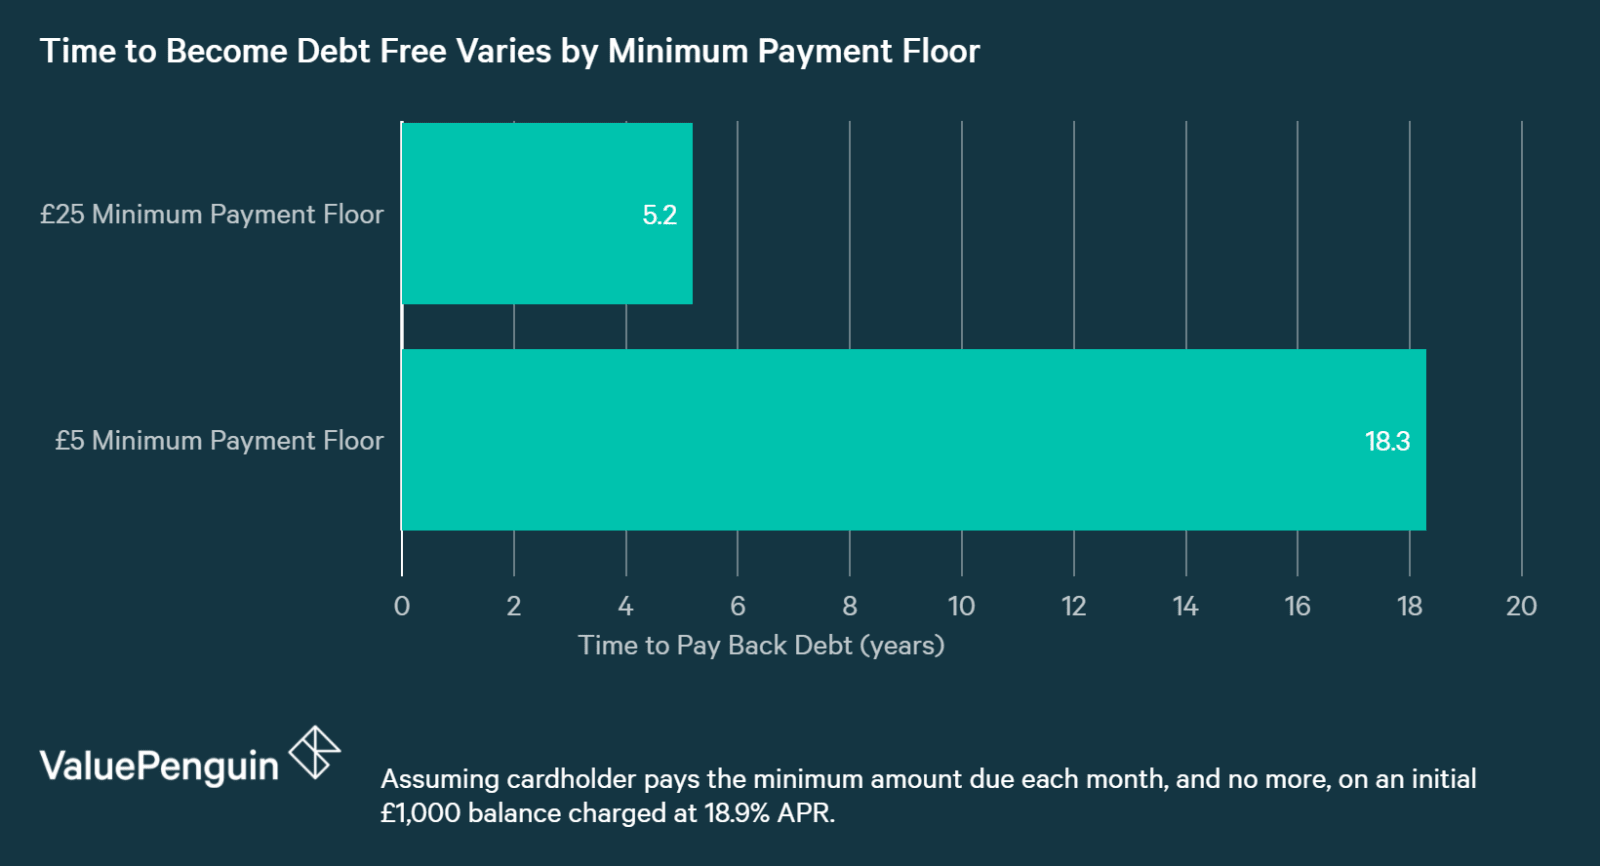 chart showing time to pay back credit card debt by minimum payment floor